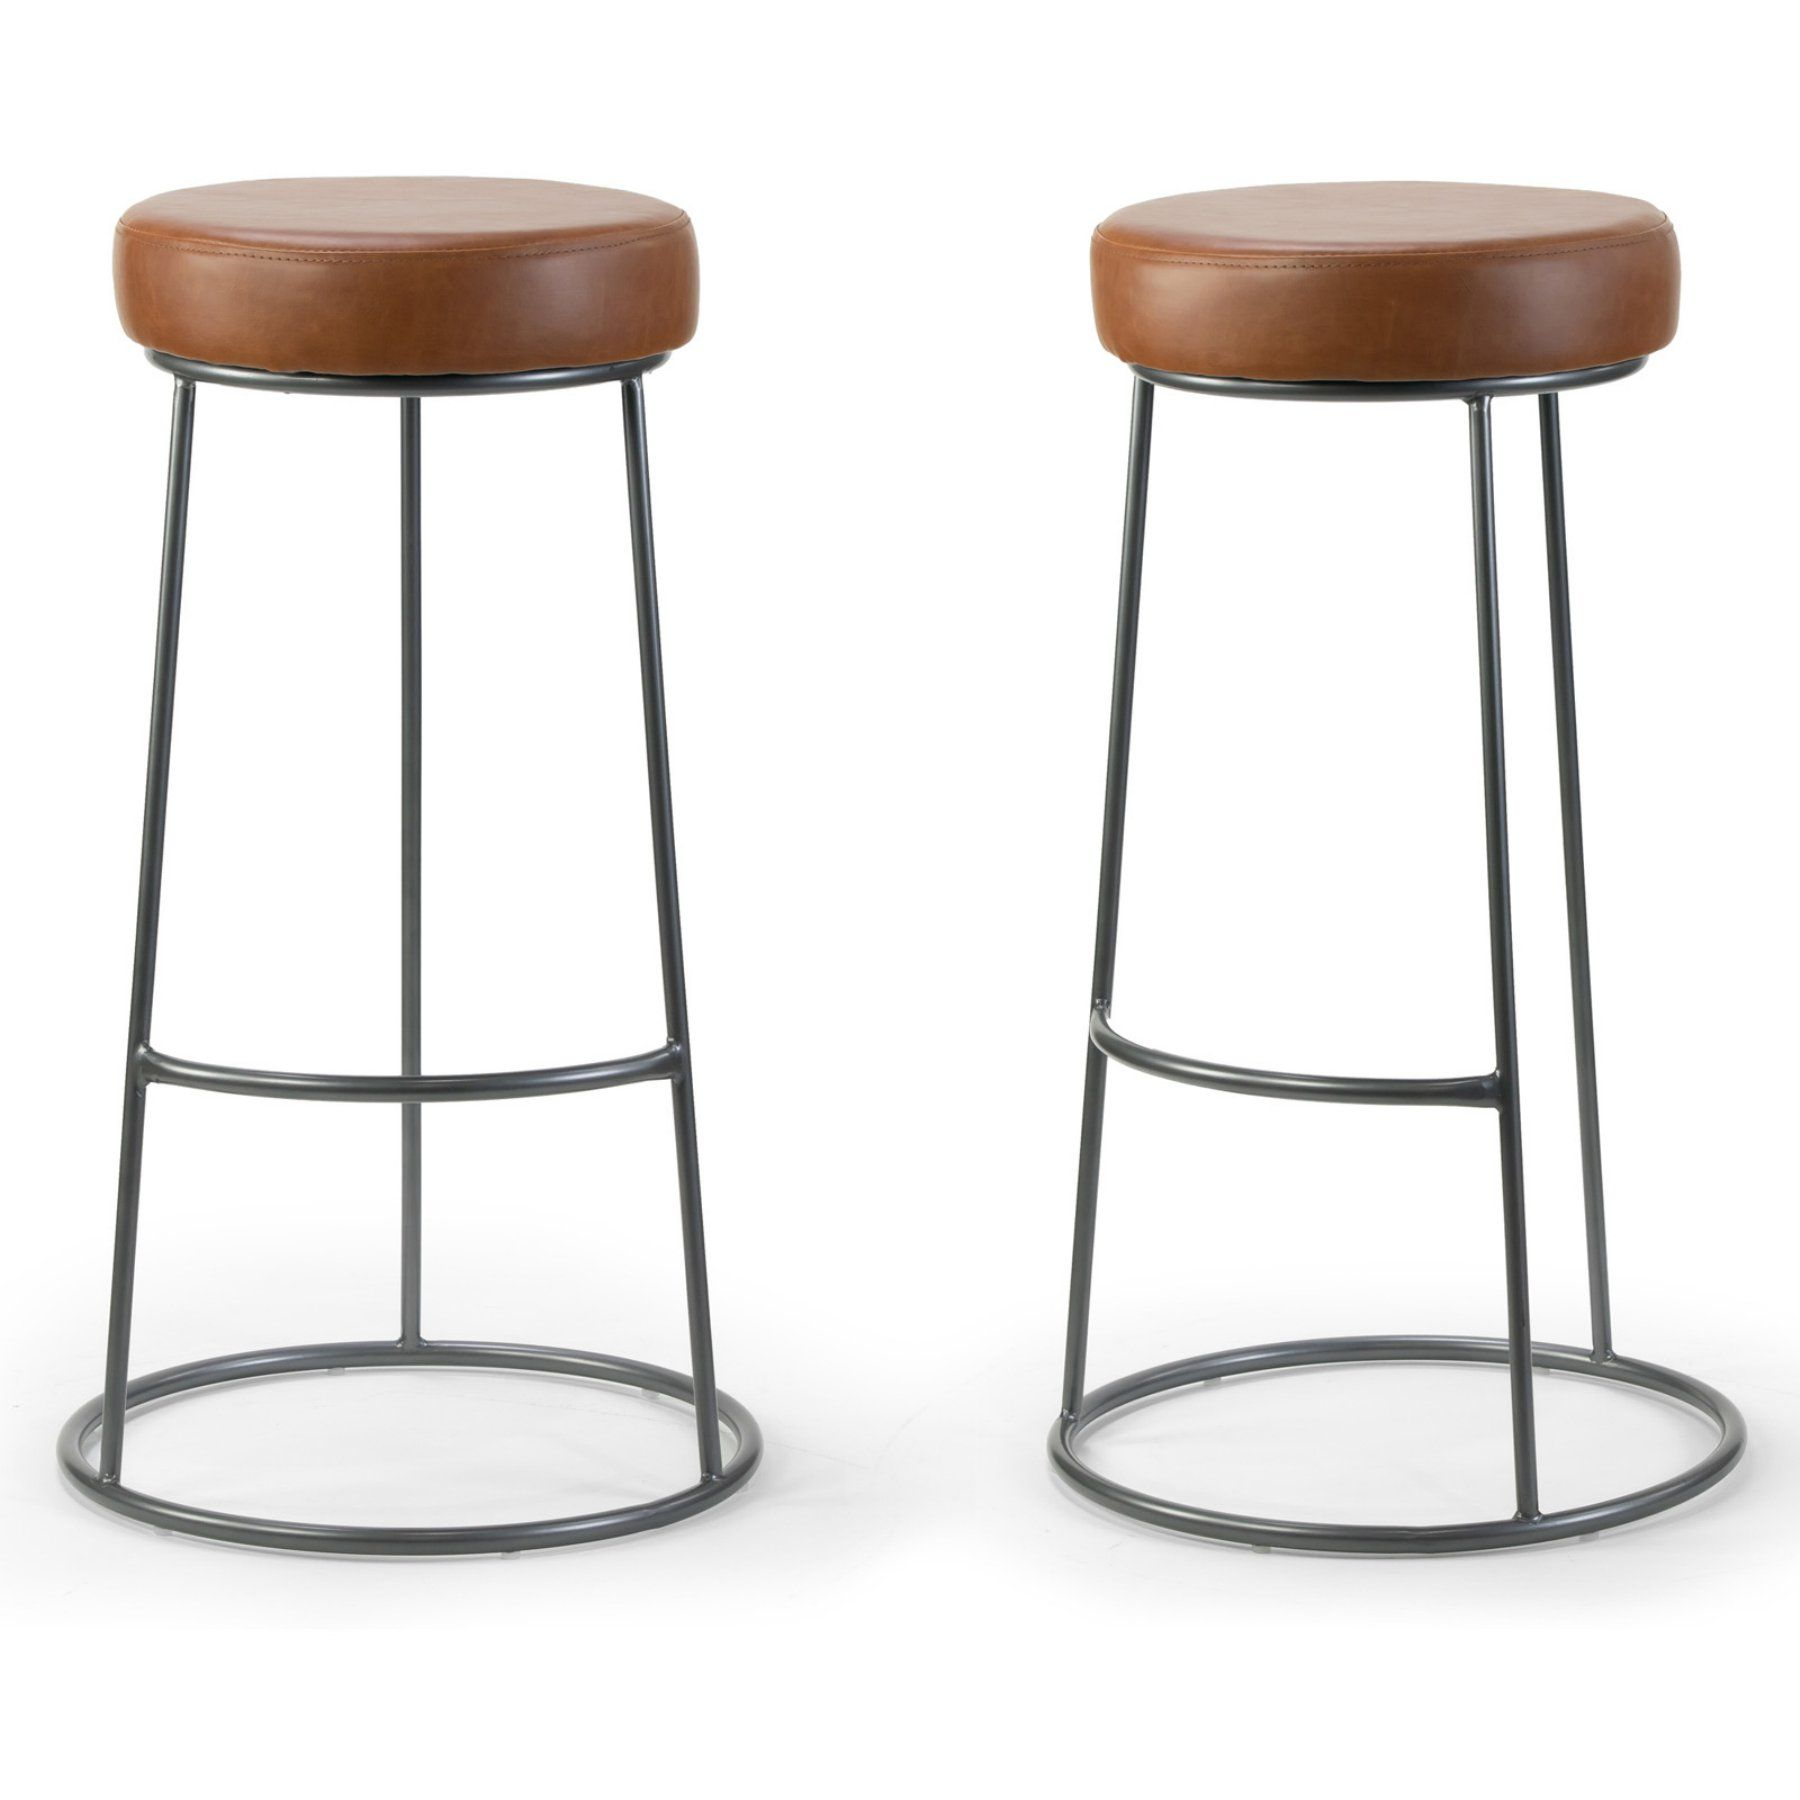 Glamour Home Amie 30 25 In Backless Bar Stool Set Of 2 Backless Bar Stools Bar Stools Counter Stools